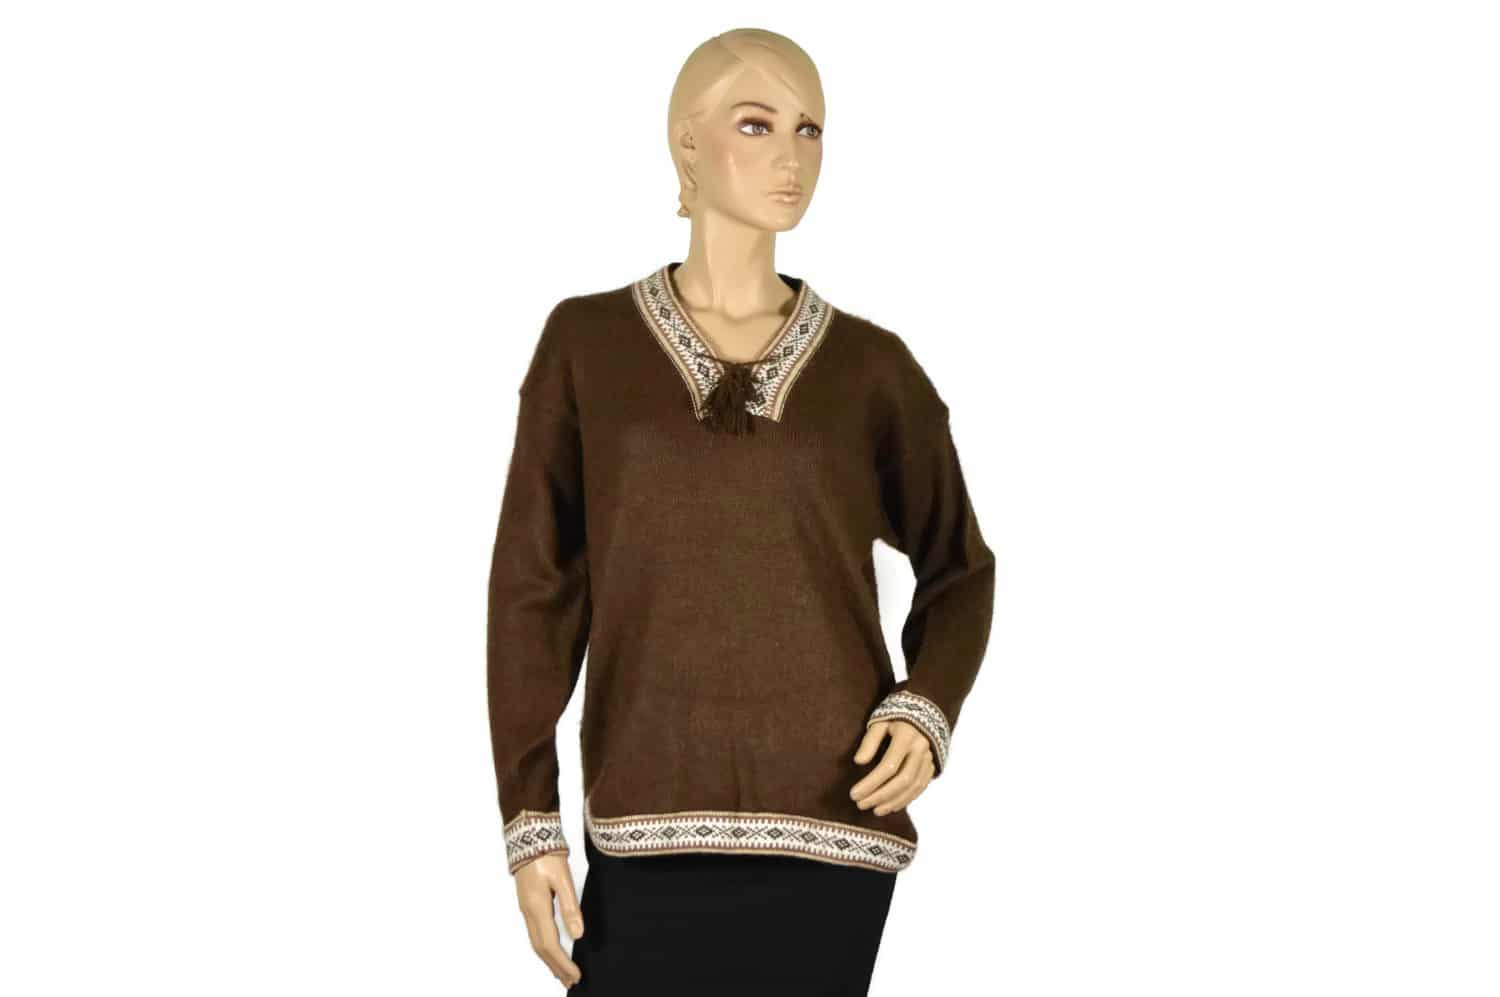 Shop for modern day women's alpaca pullover sweaters. Soft and cozy, warm yet breathable, our designer alpaca sweaters are a natural fashionable way to be in style.